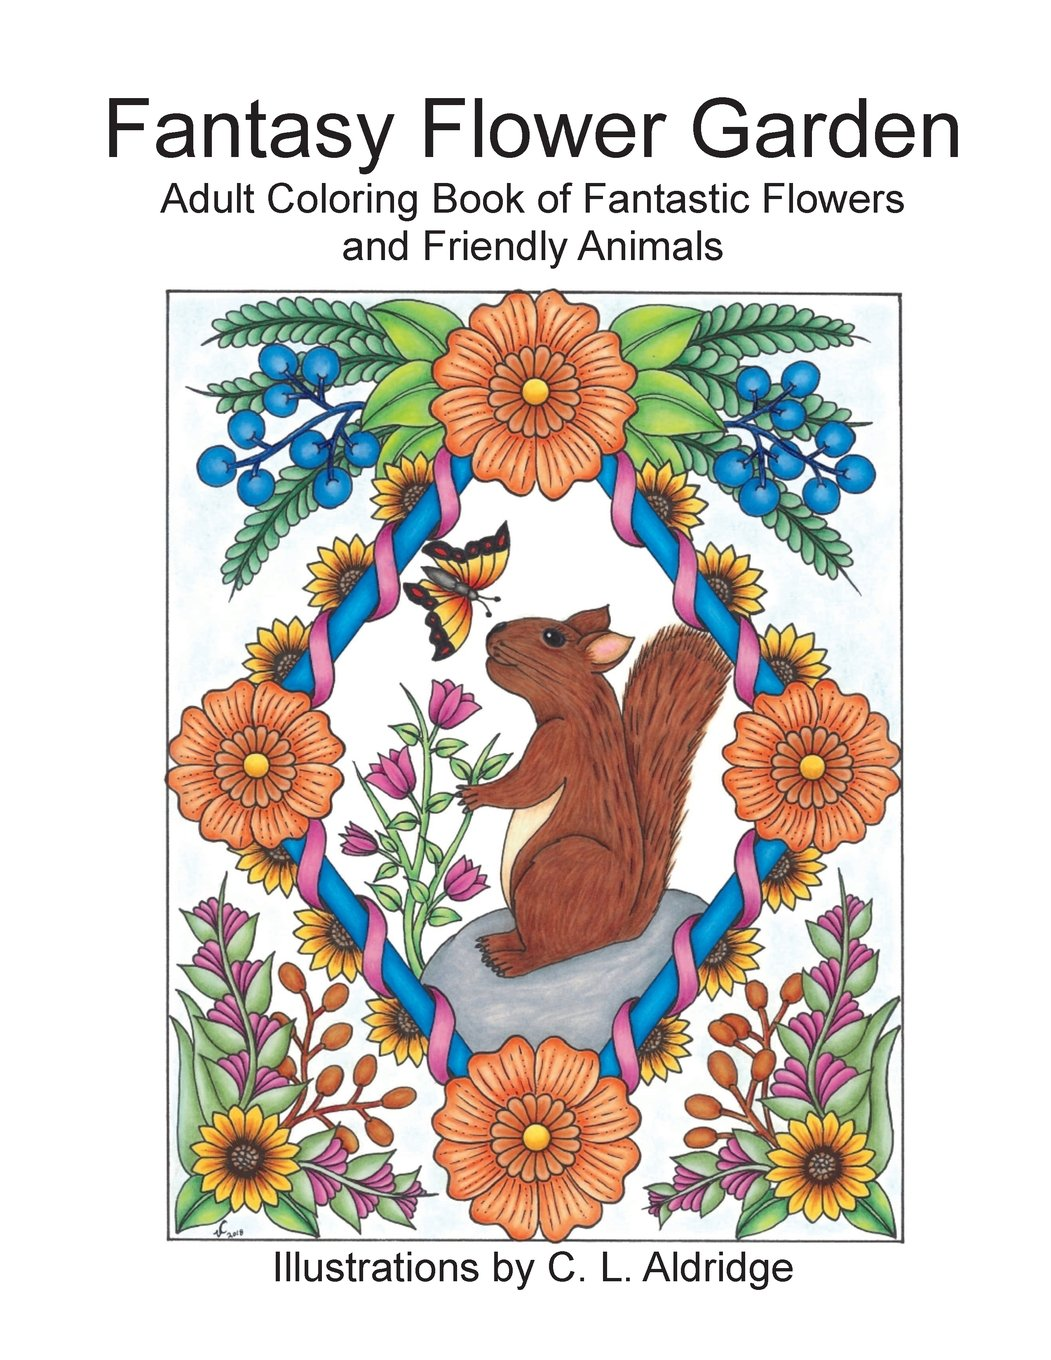 Amazon Fantasy Flower Garden Adult Coloring Book Of Fantastic Flowers And Friendly Animals 9781986117470 C L Aldridge Books